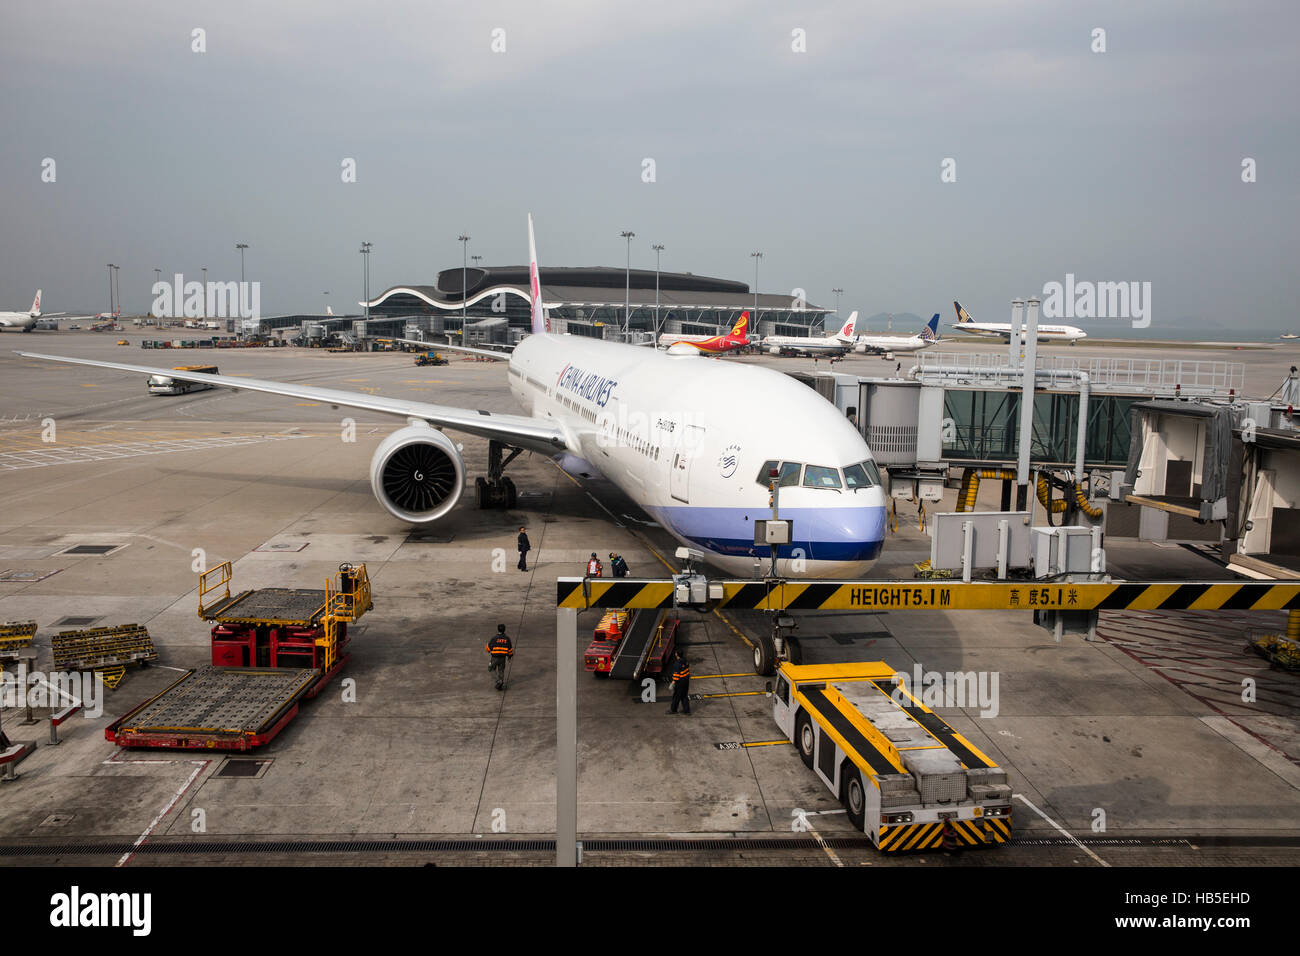 A airplane is being loaded with cargo in preparation for departure at Hongkong International Airport - Stock Image